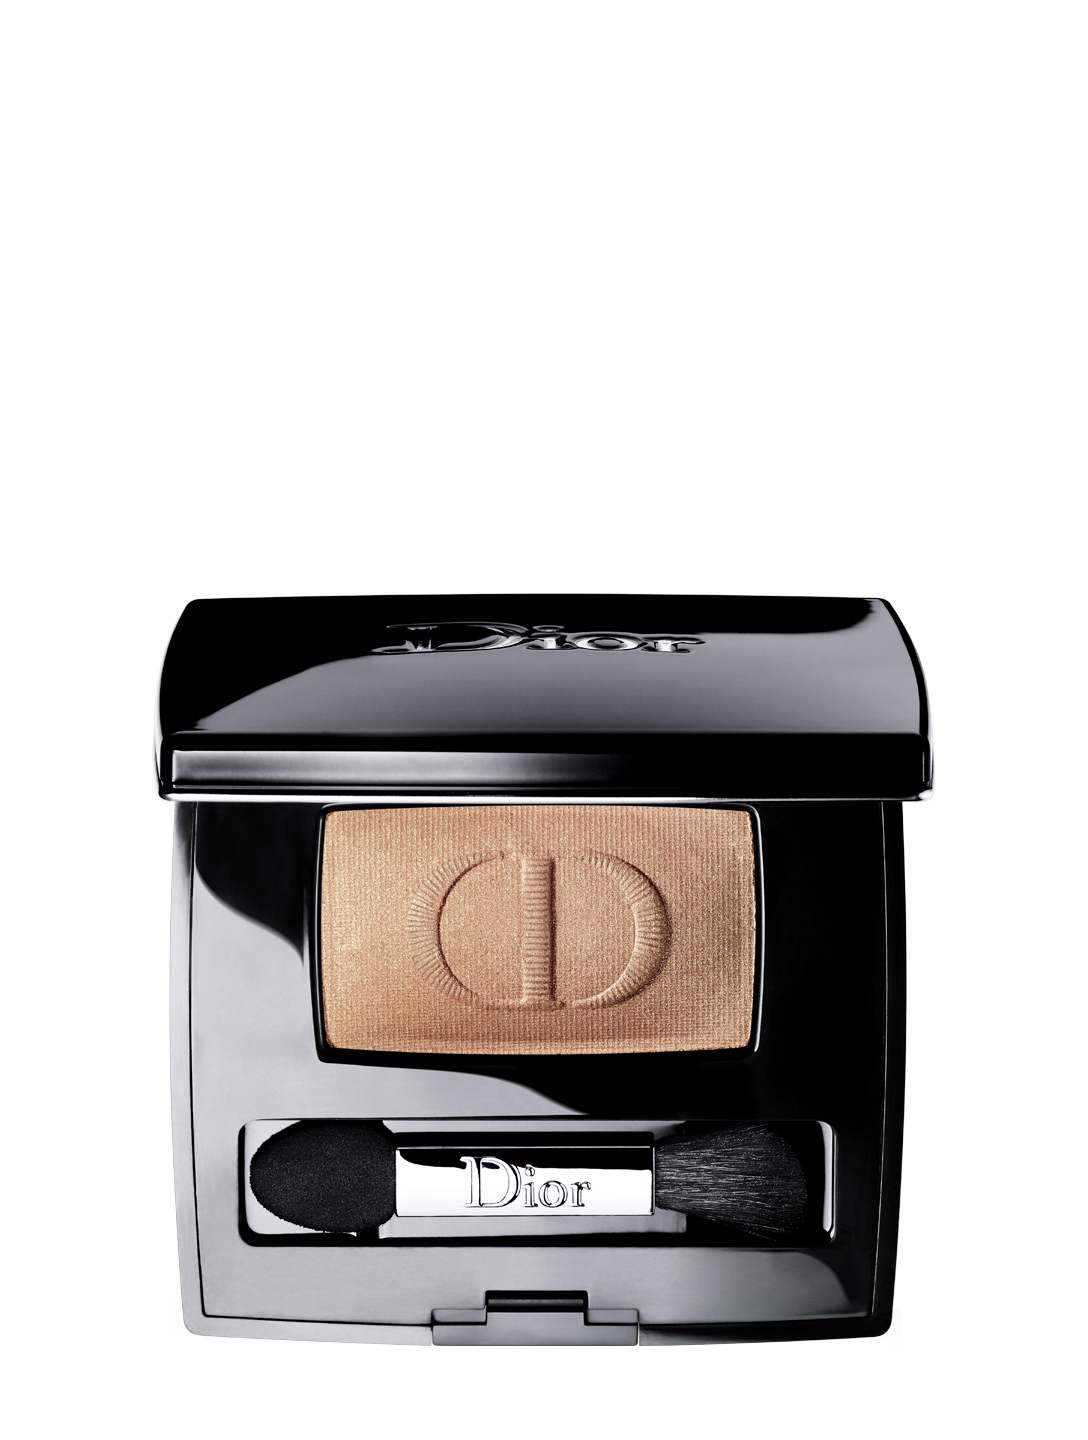 DIOR Diorshow Mono Professional Eyeshadow Spectacular Effects & Long Wear Beauty Bronze